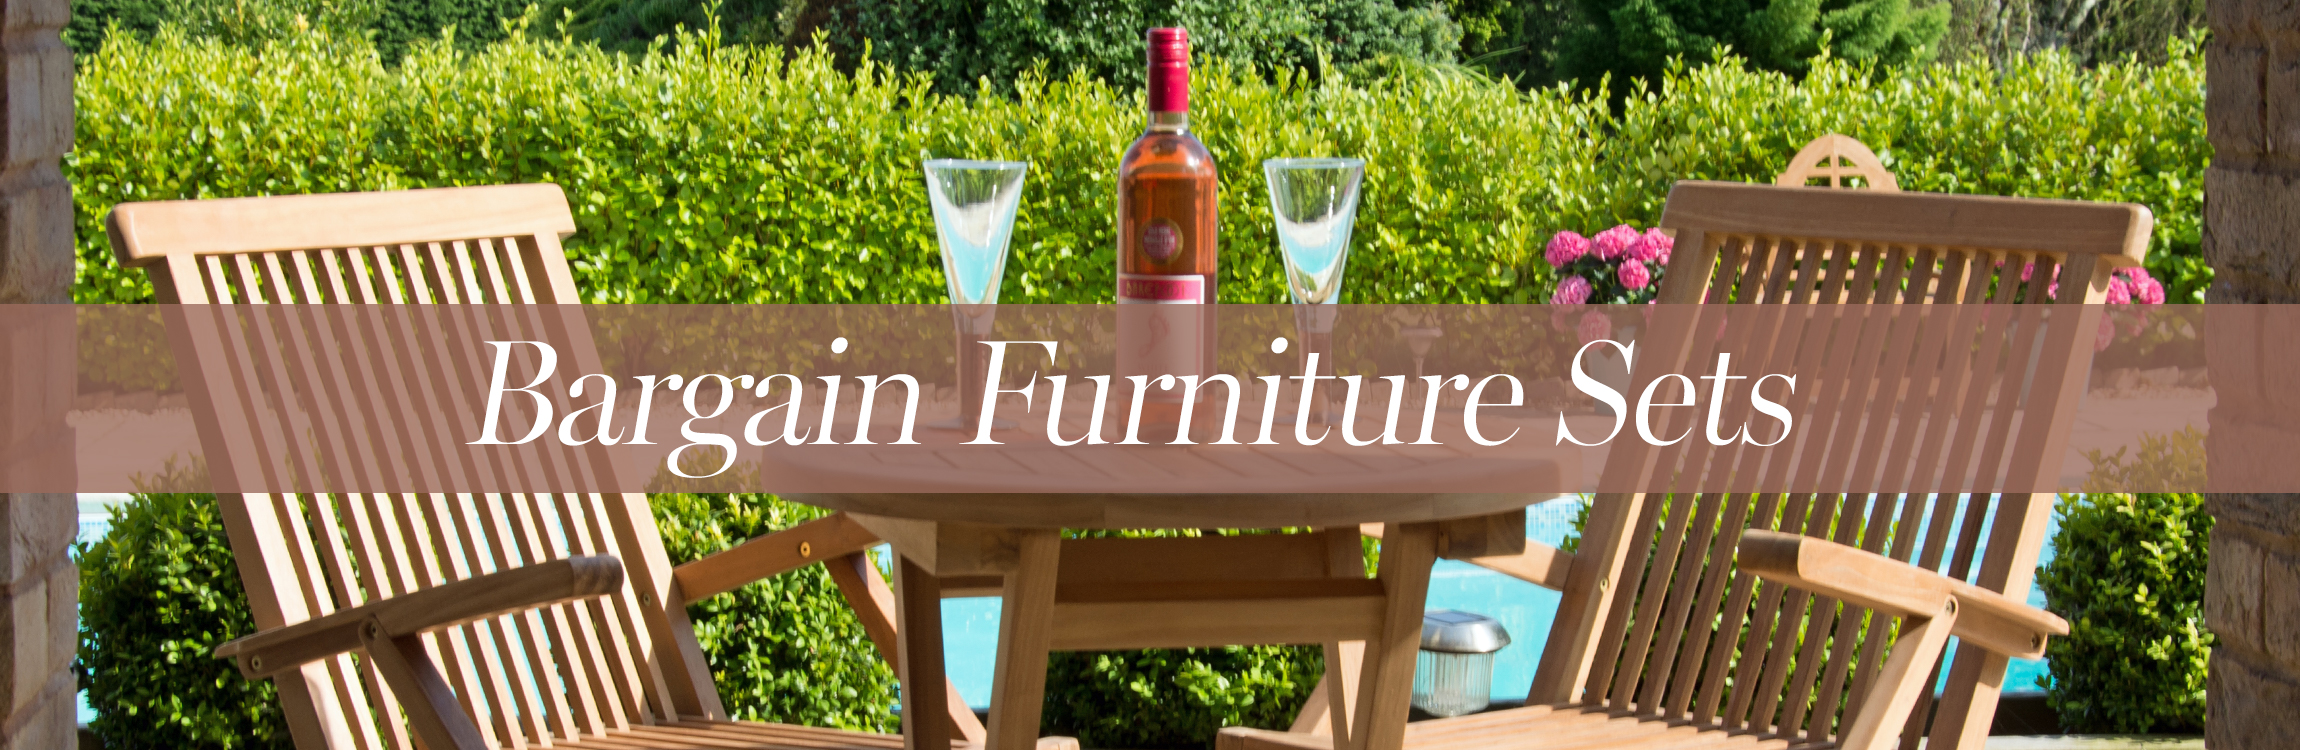 Bargain Garden Furniture Sets